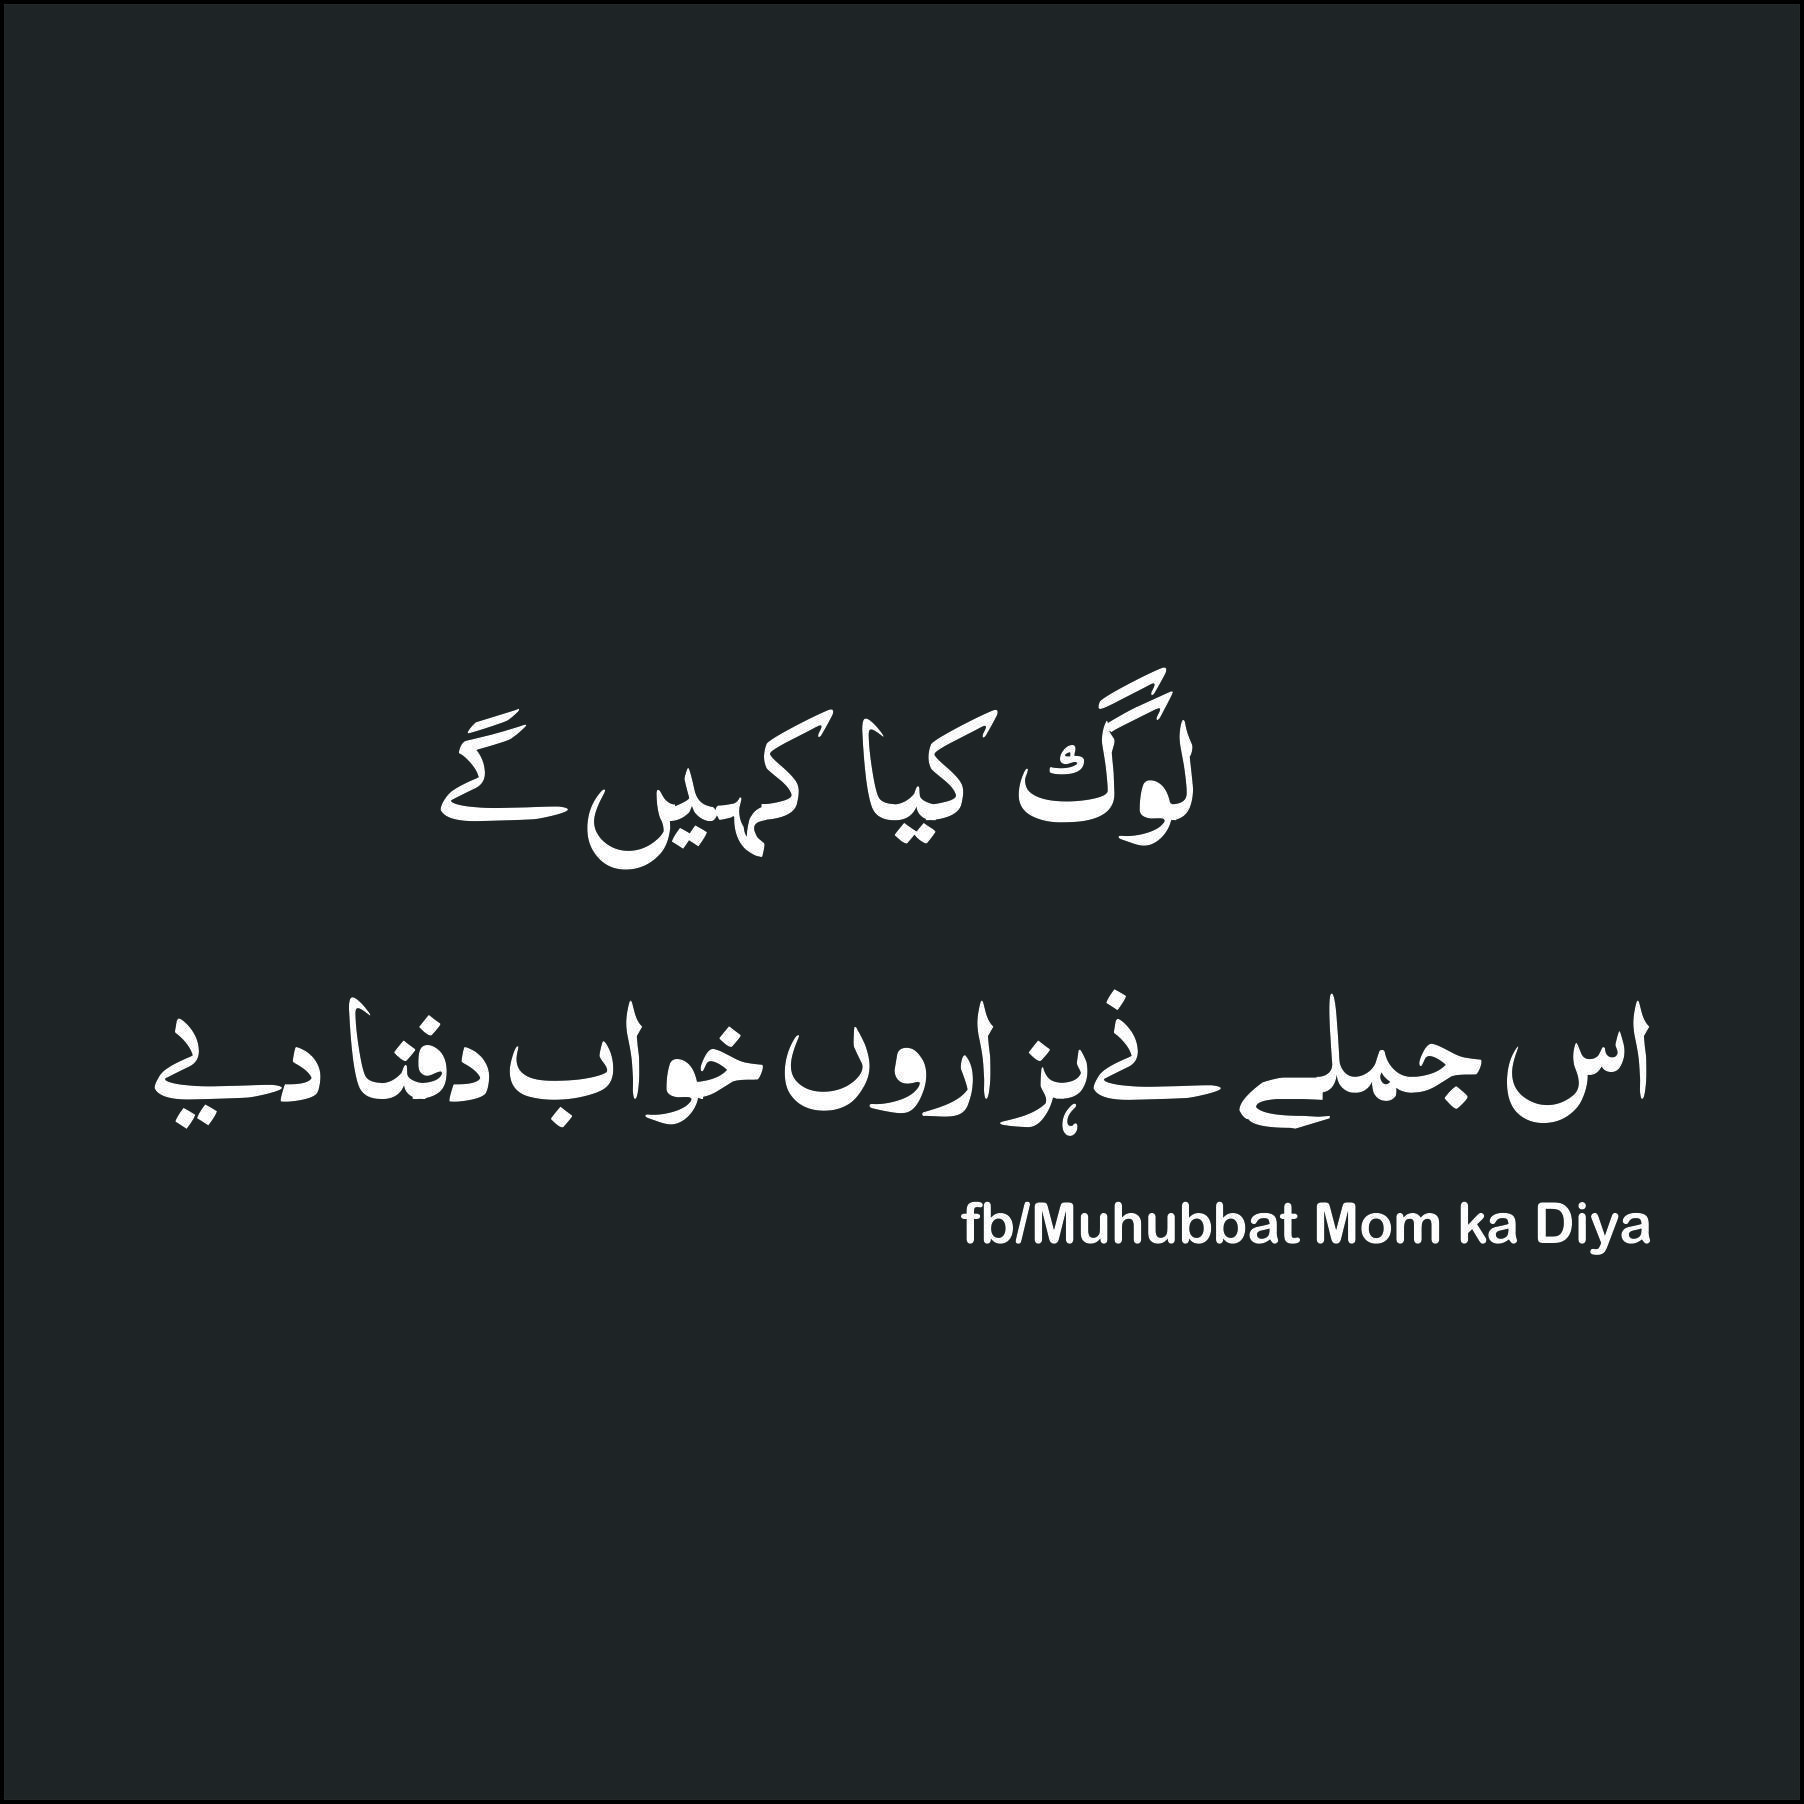 Pin By Hamnas Nusrath On Poetry Islamic Inspirational Quotes Urdu Funny Poetry Deep Words